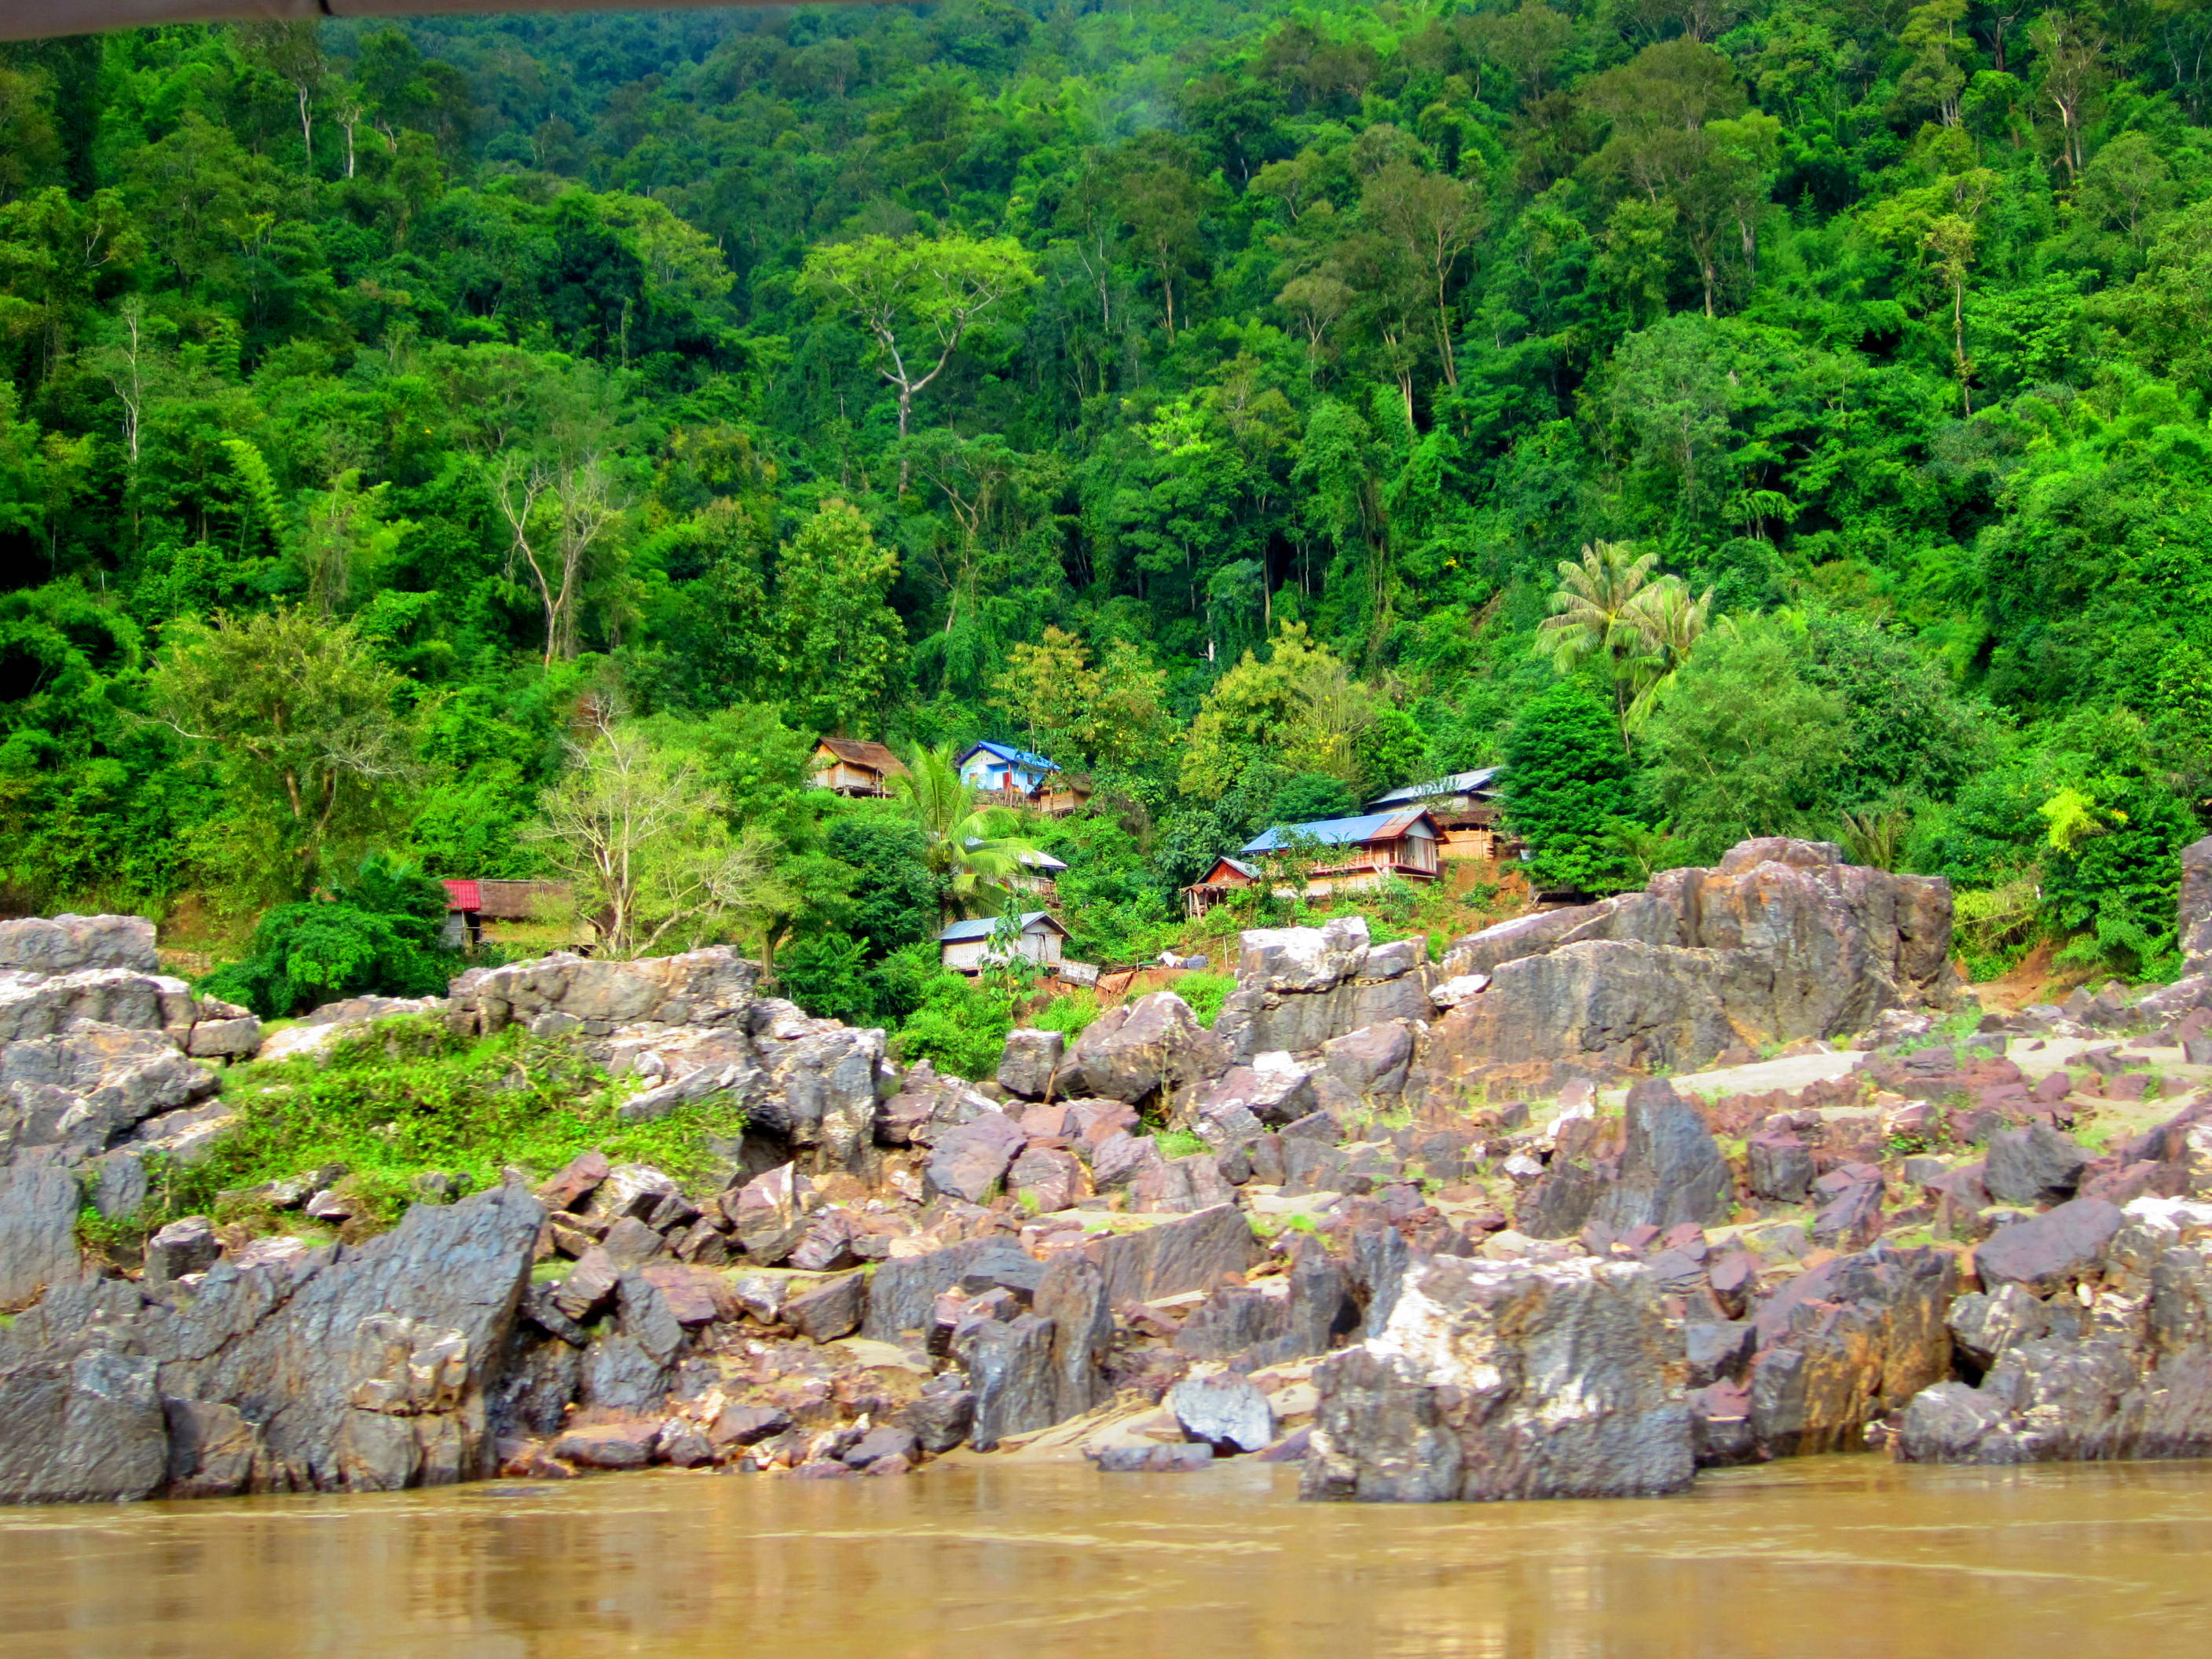 Town on the riverbank. Taking the riverboat from Laos back to Thailand